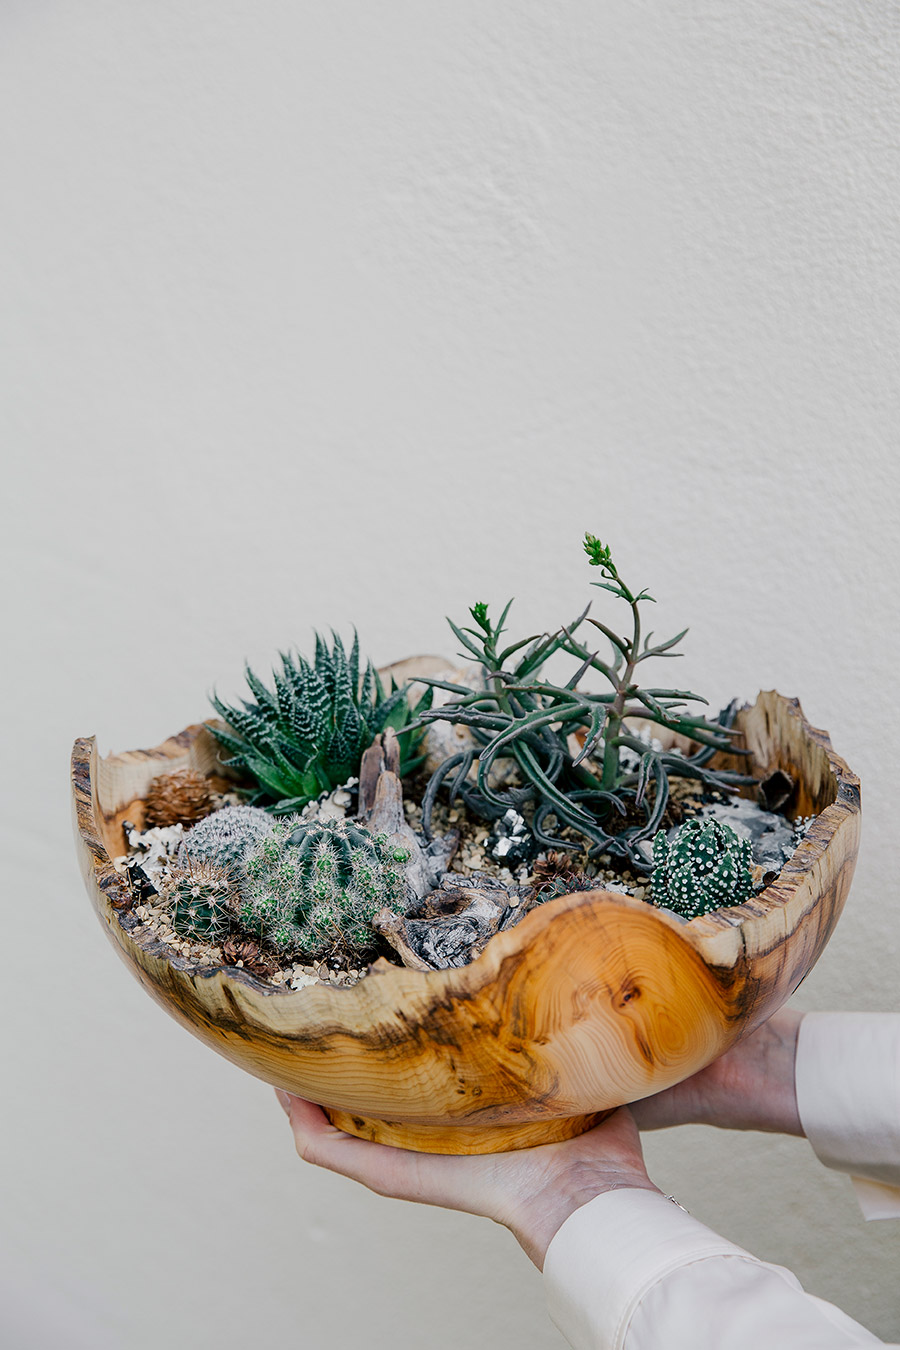 House of plants - Stunning succulent bowl